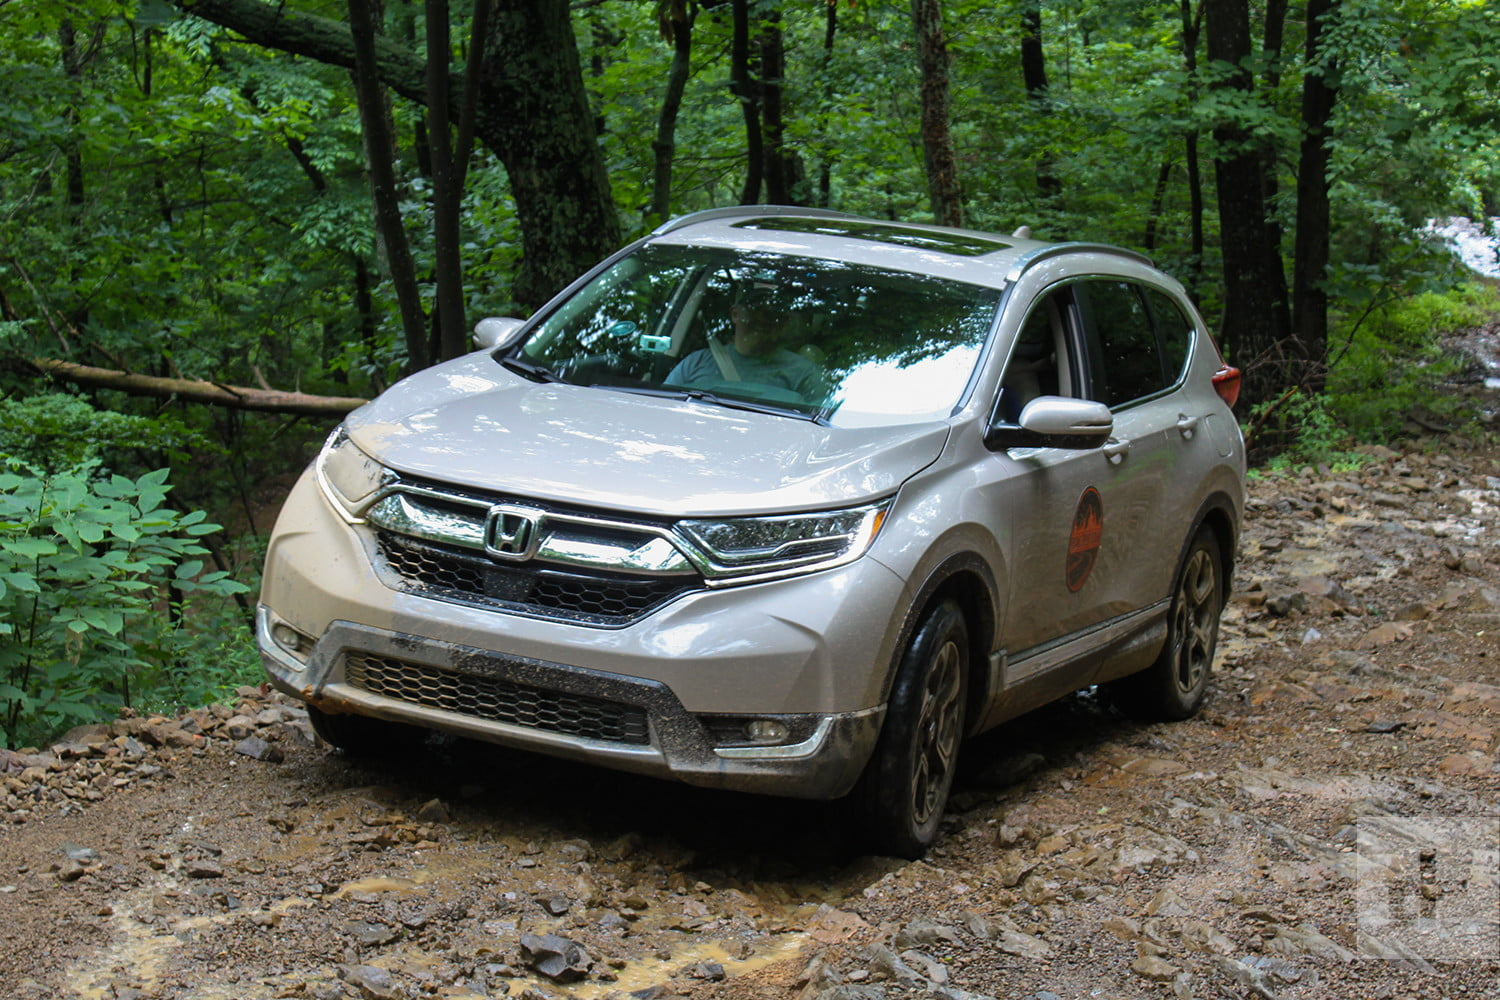 Crv Off Road >> The Best Off Road Crossovers We Tested 7 Crossovers On 4wd